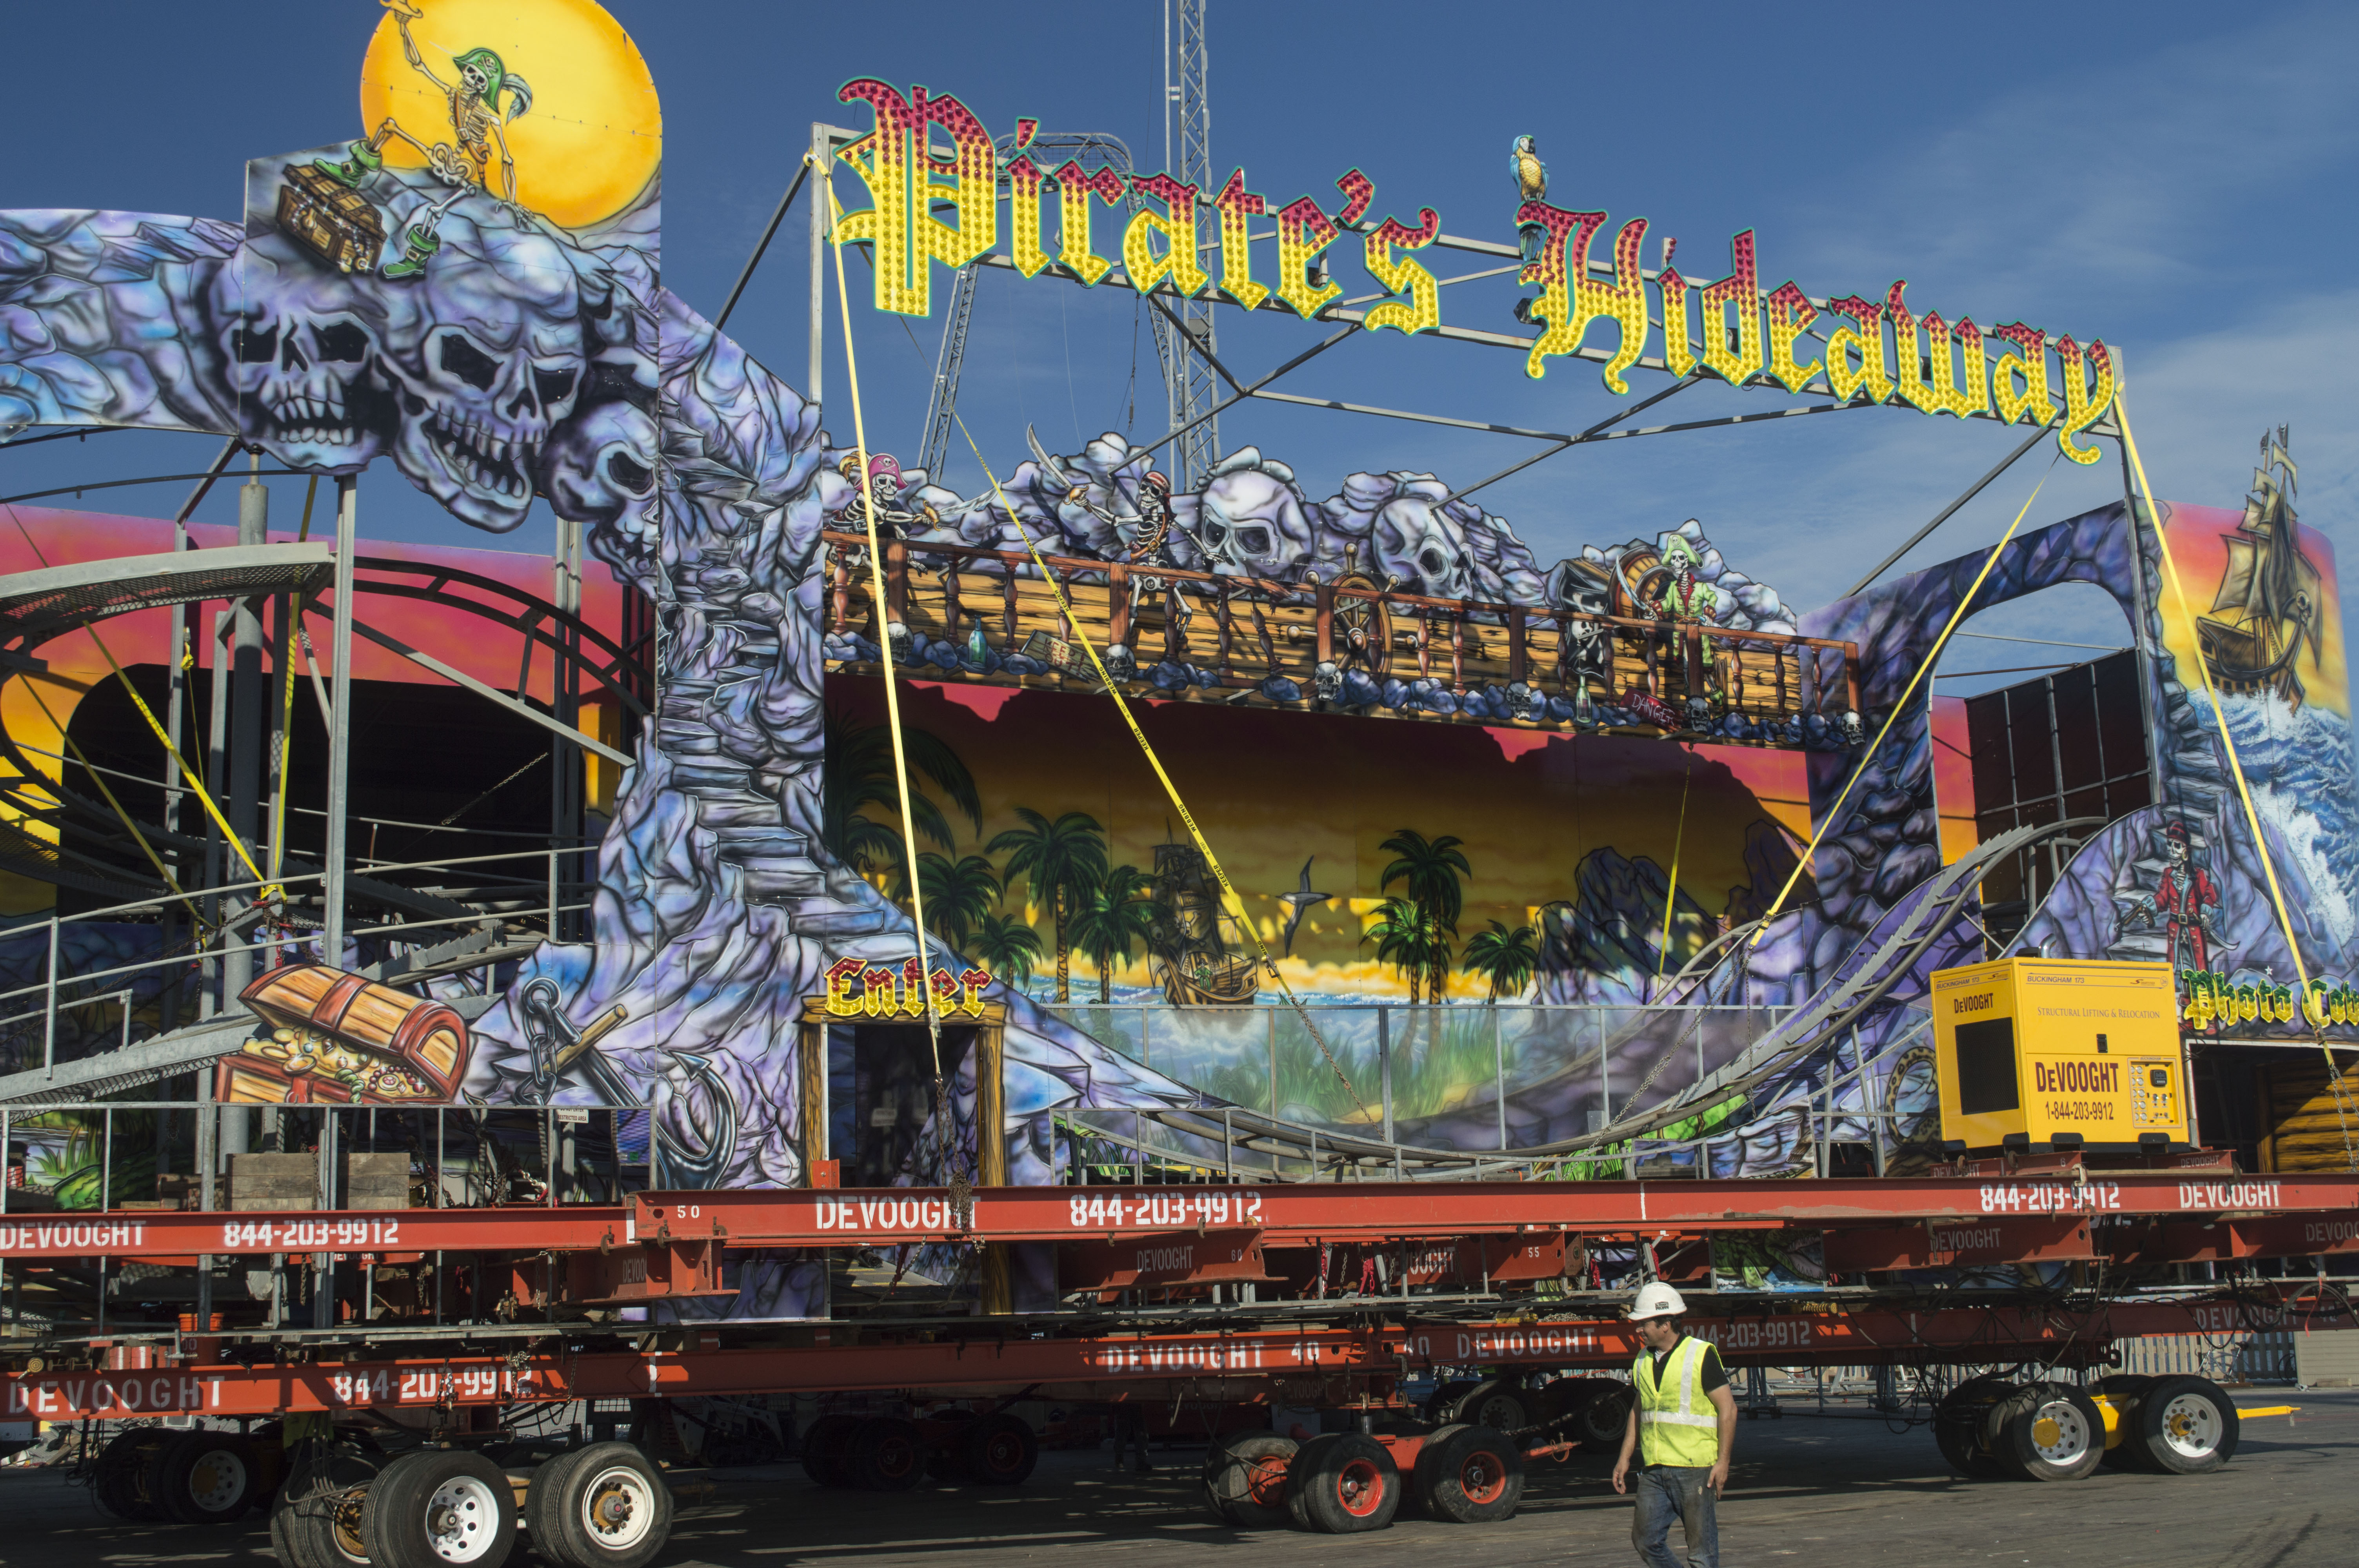 Crews move the Pirates Hideaway rollercoaster in Seaside Heights, N.J., Oct. 17, 2016. (Photo: Daniel Nee)